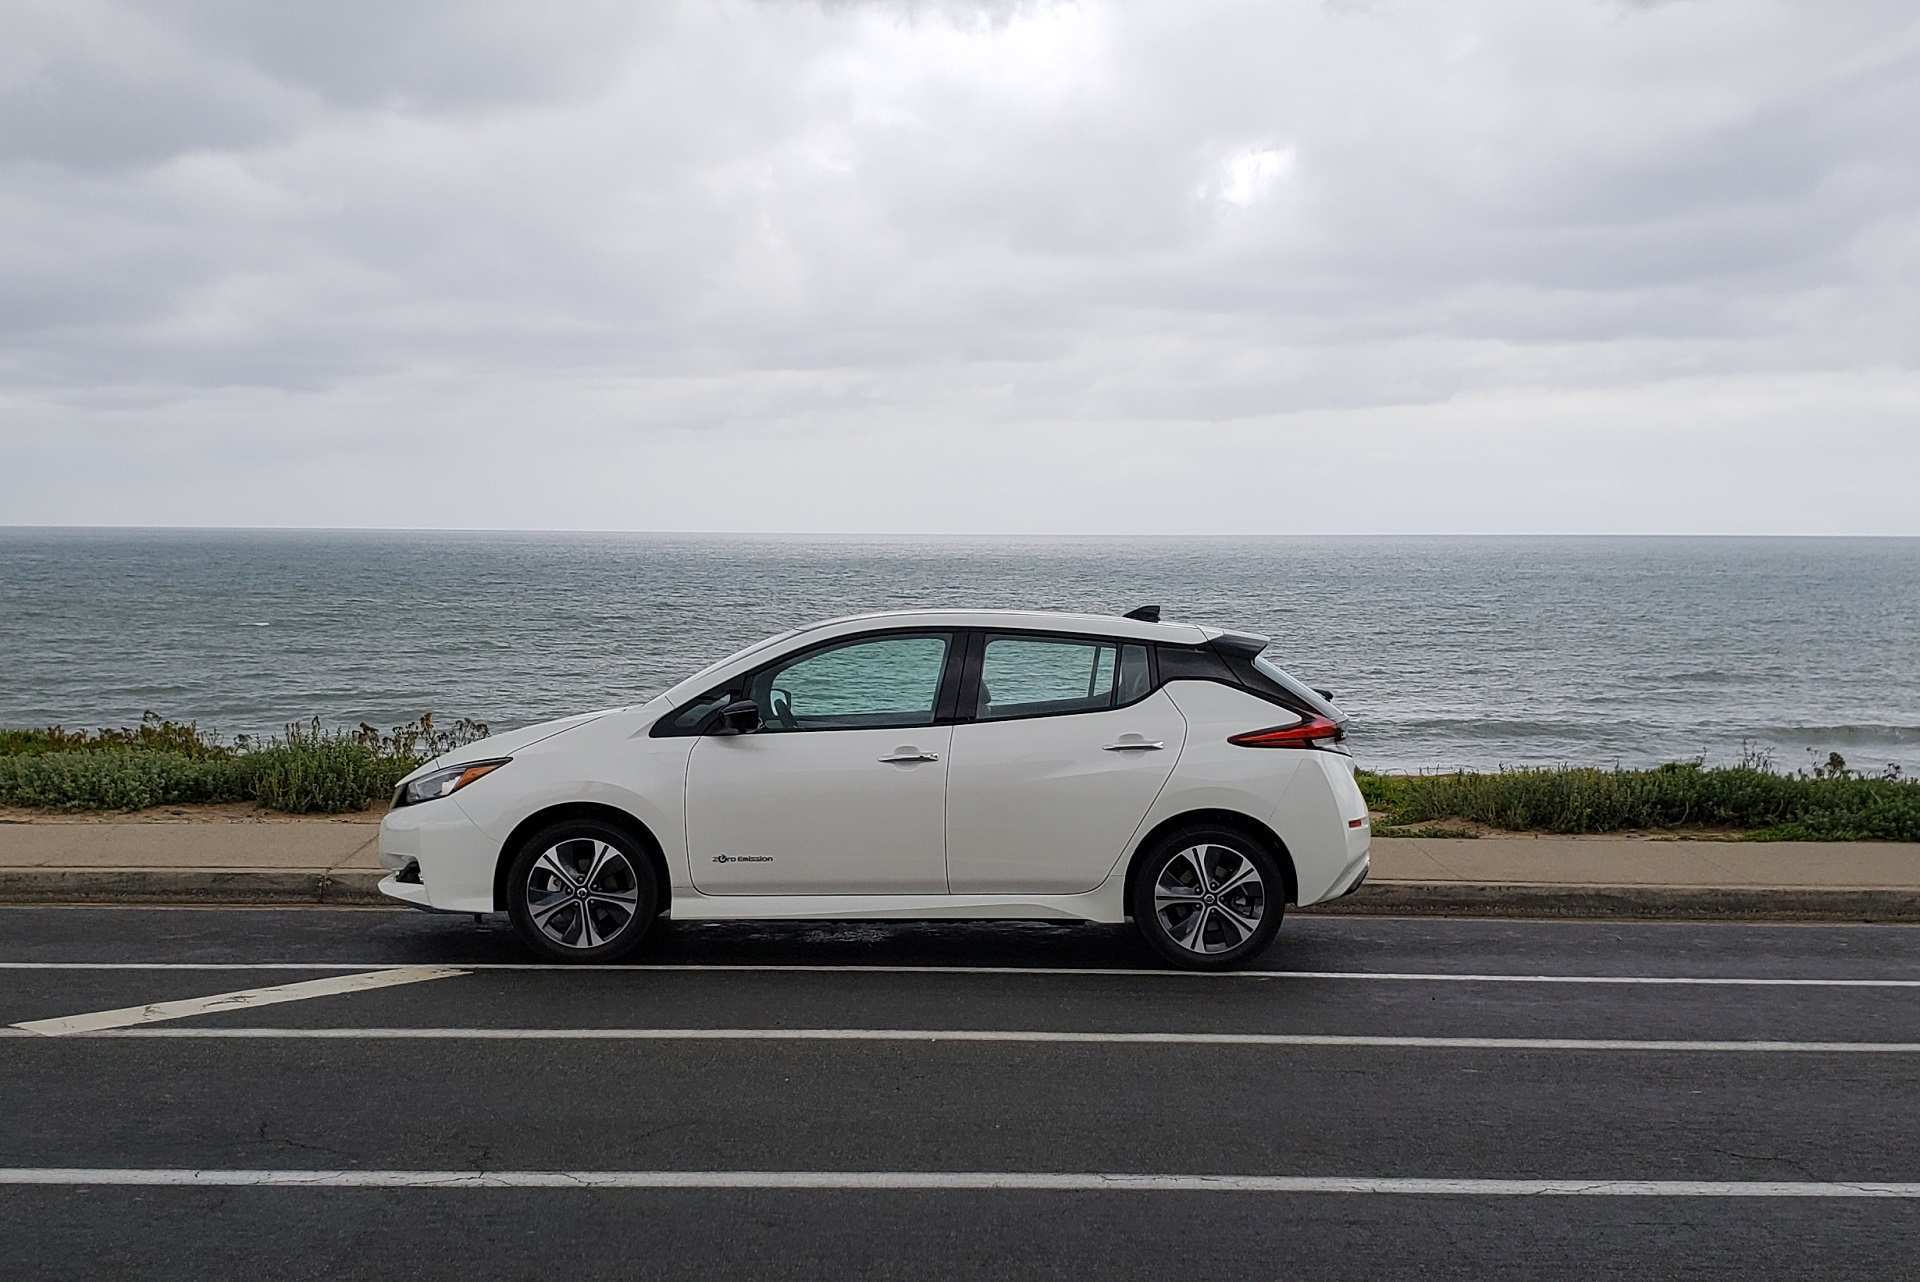 68 All New 2019 Nissan Leaf Review History by 2019 Nissan Leaf Review